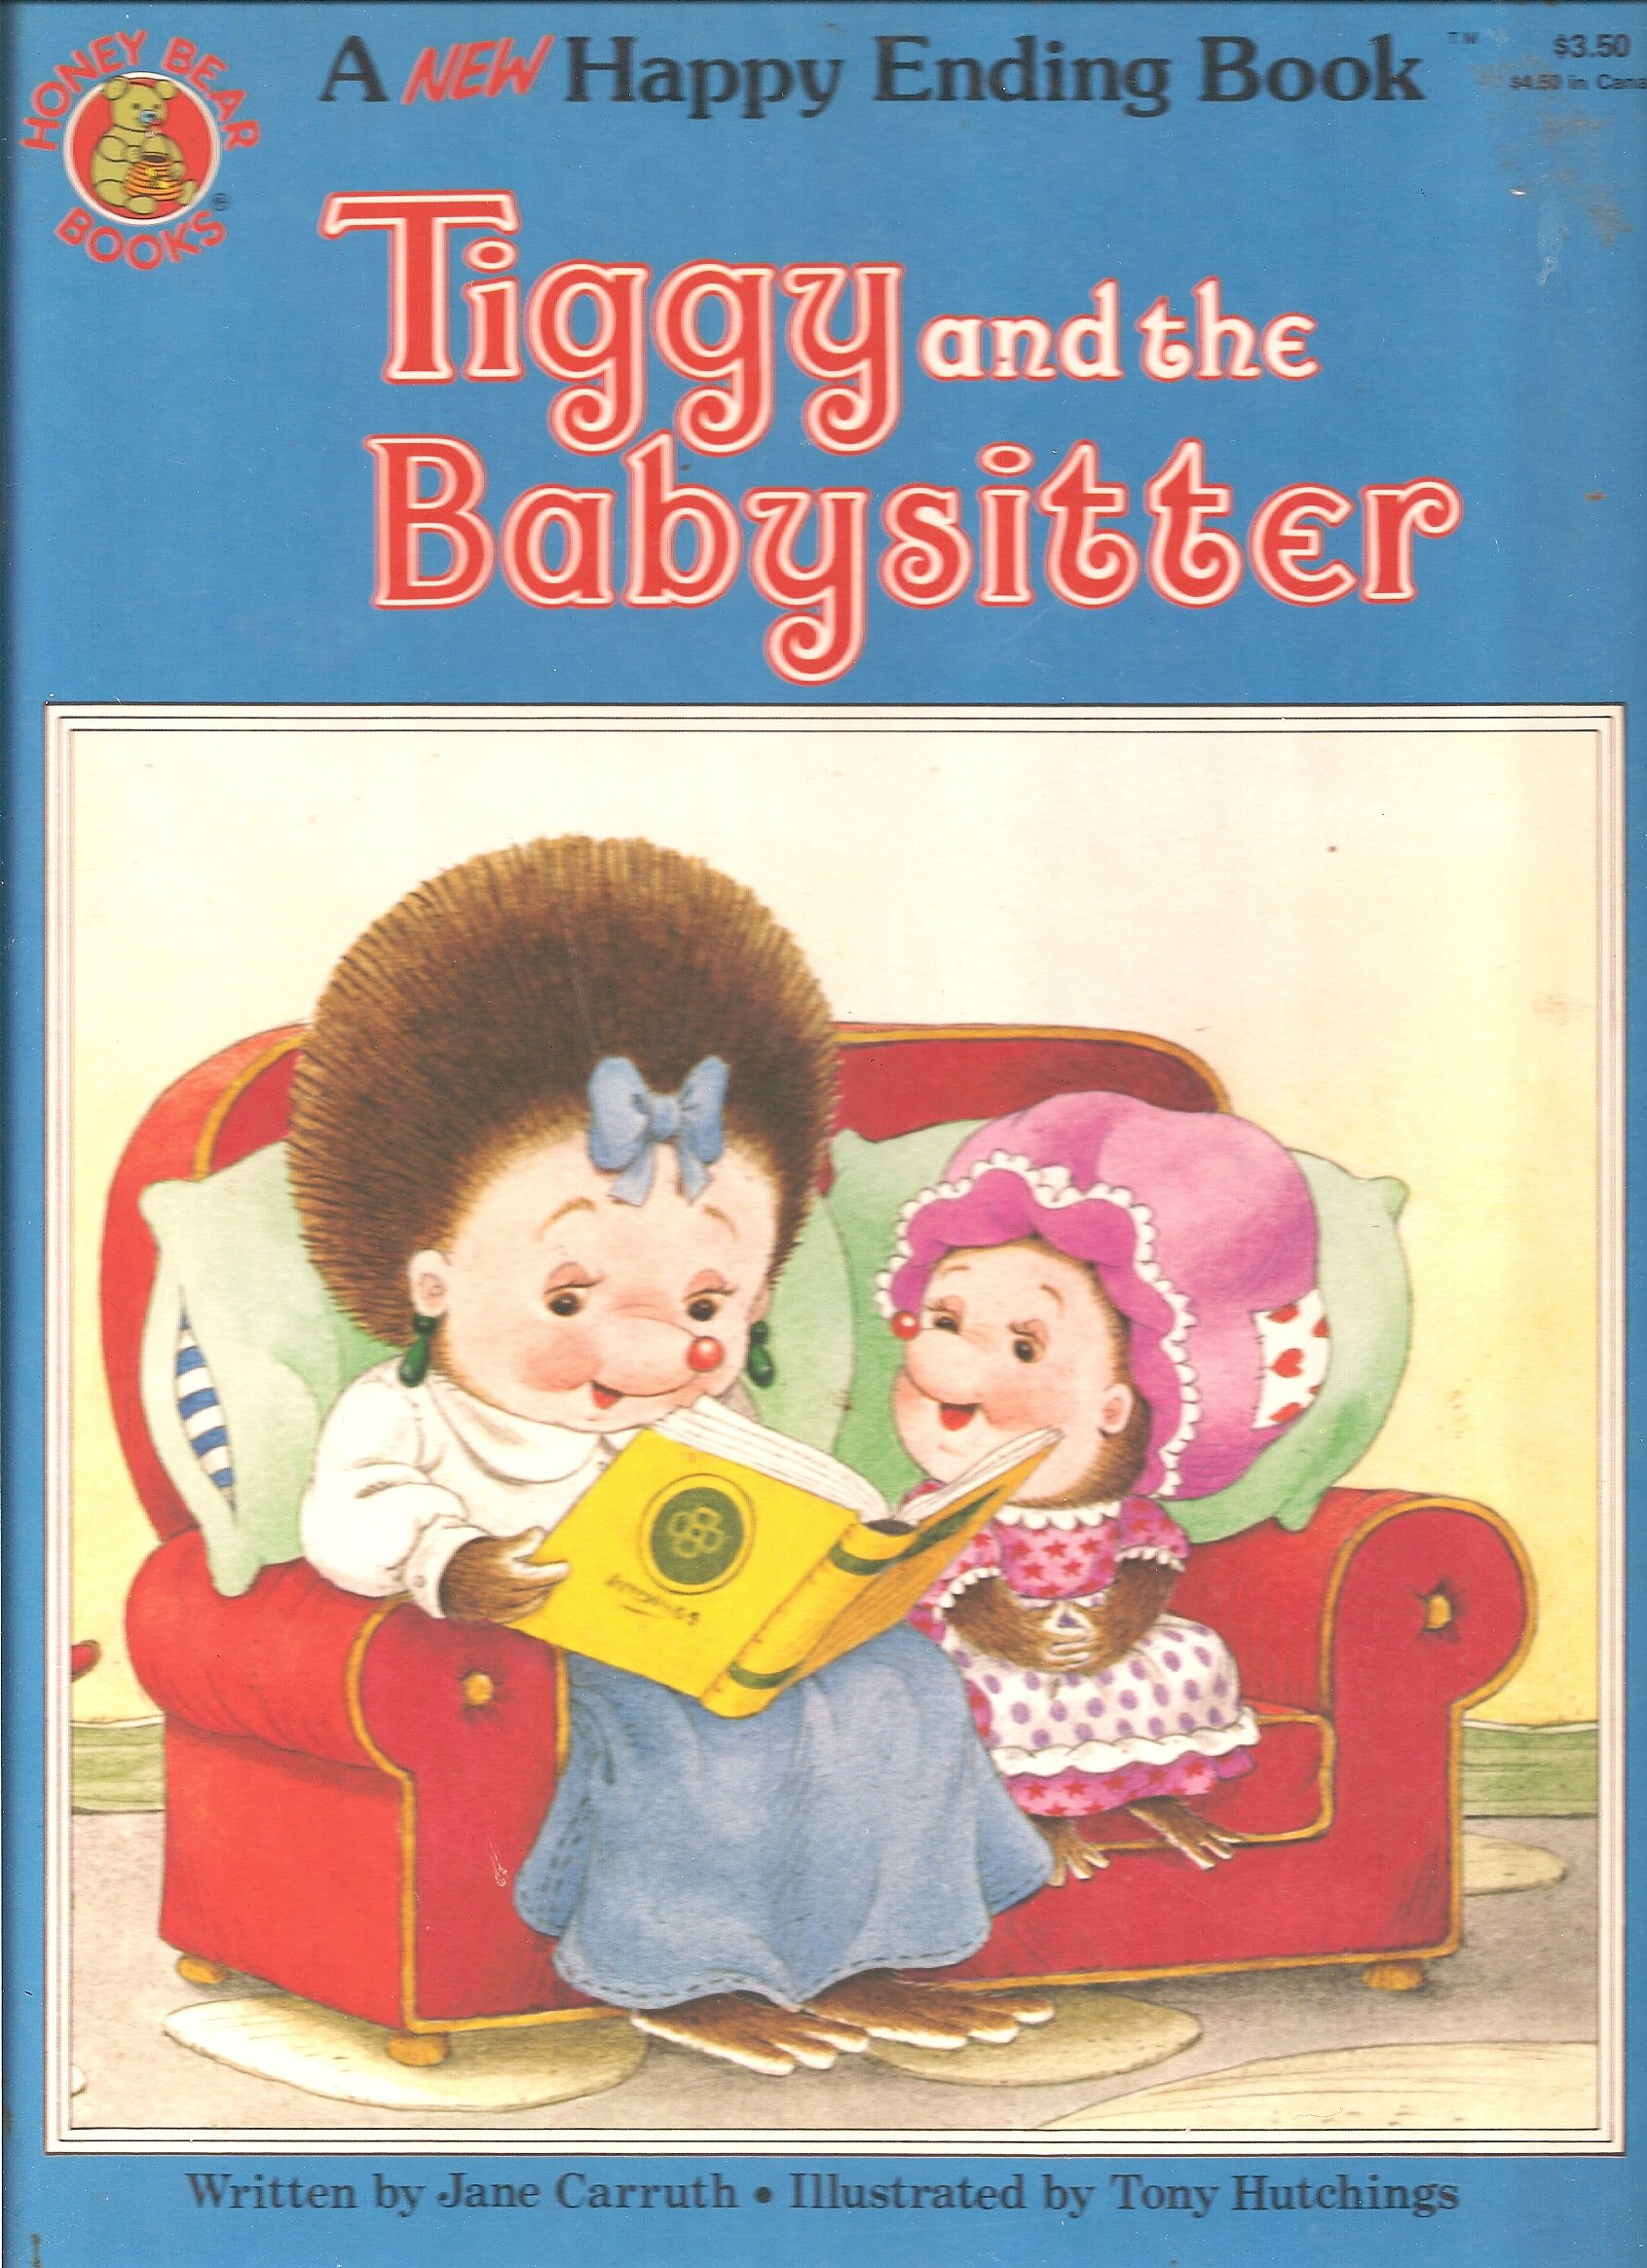 tiggy and the babysitter a new happy ending book jane carruth tiggy and the babysitter a new happy ending book jane carruth 9780874492712 com books